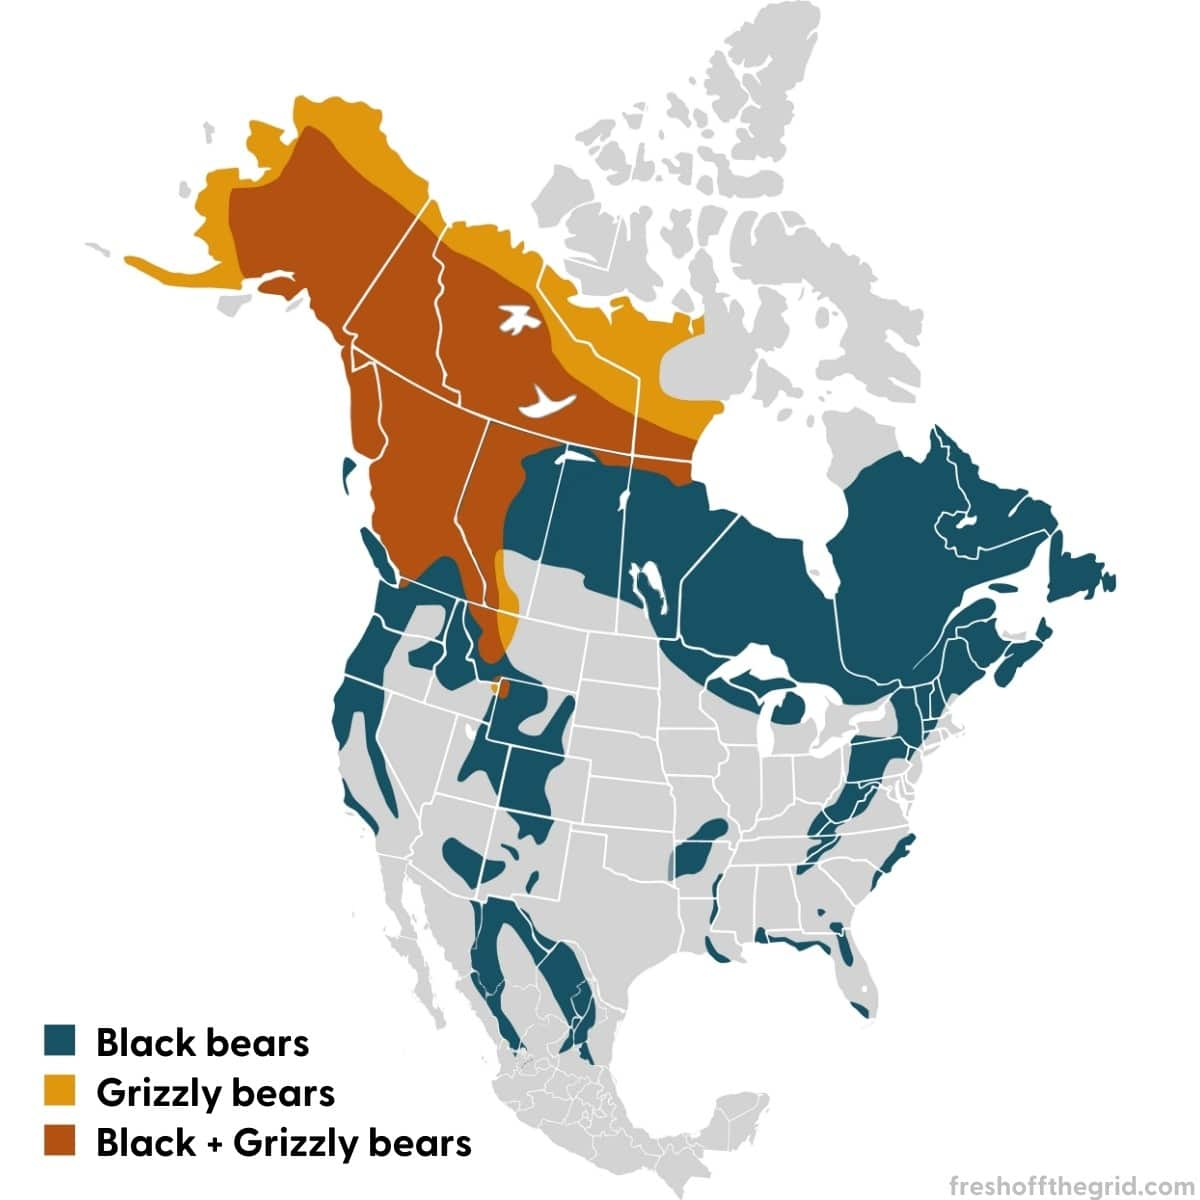 Map of North America depicting black bear and grizzly bear habitats